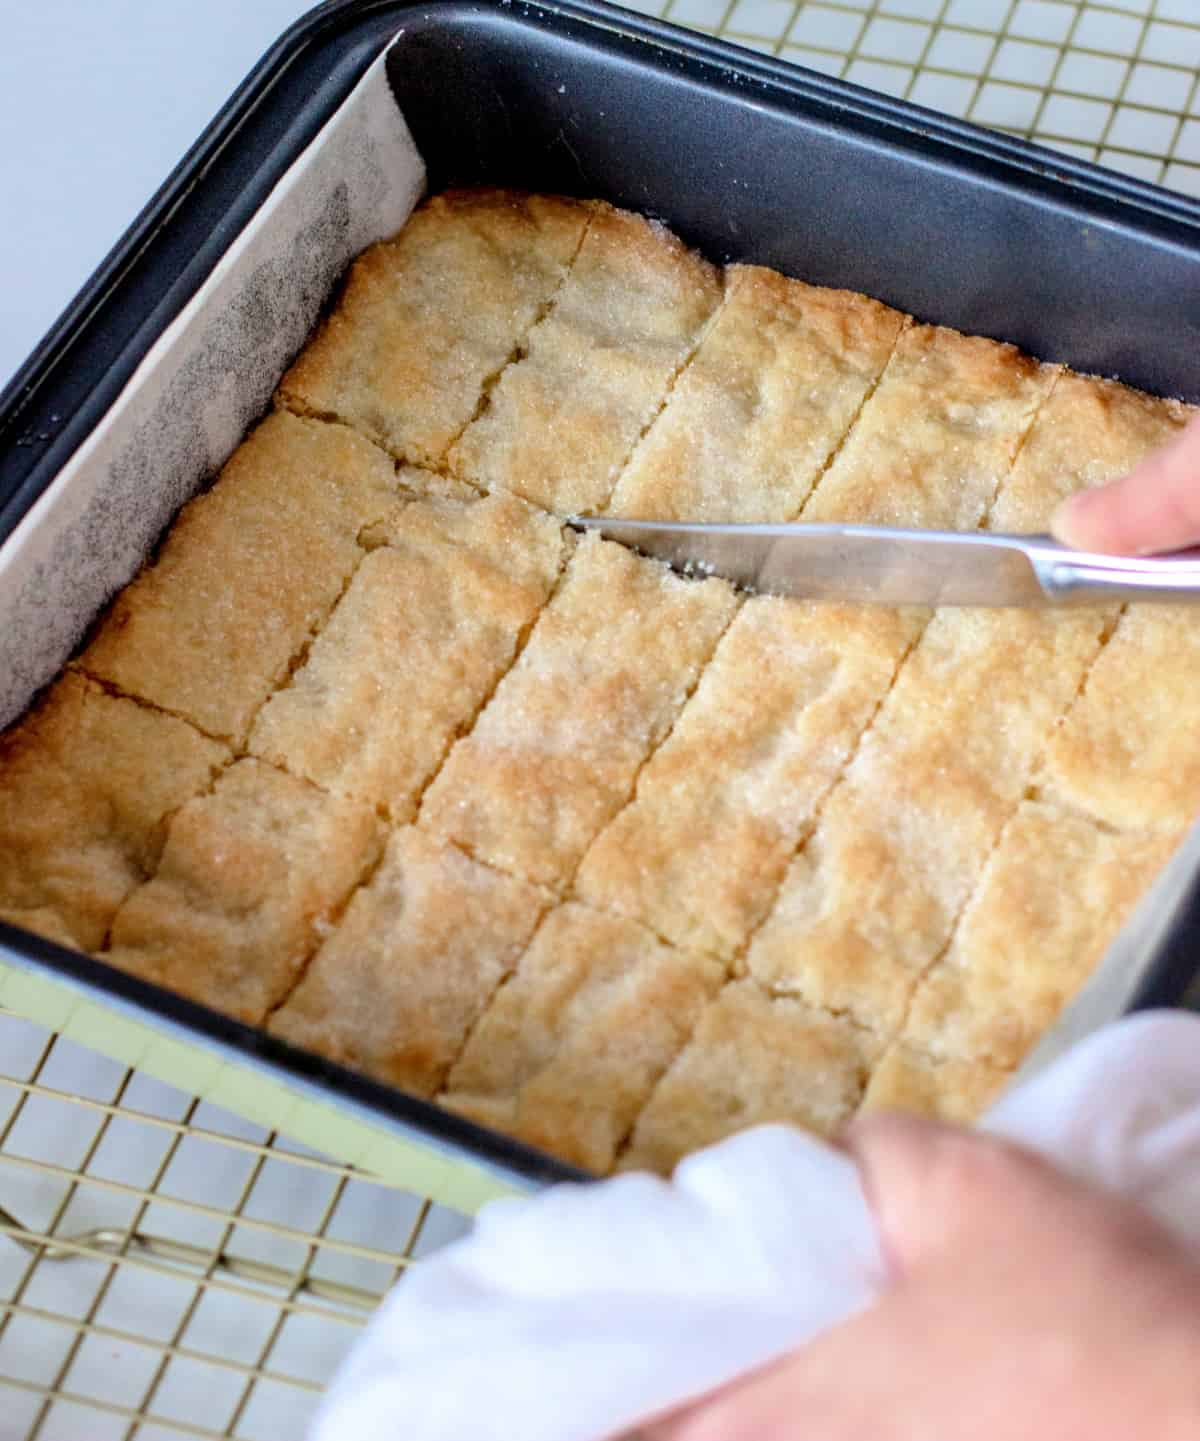 Cutting baked shortbread with a knife in the metal square pan